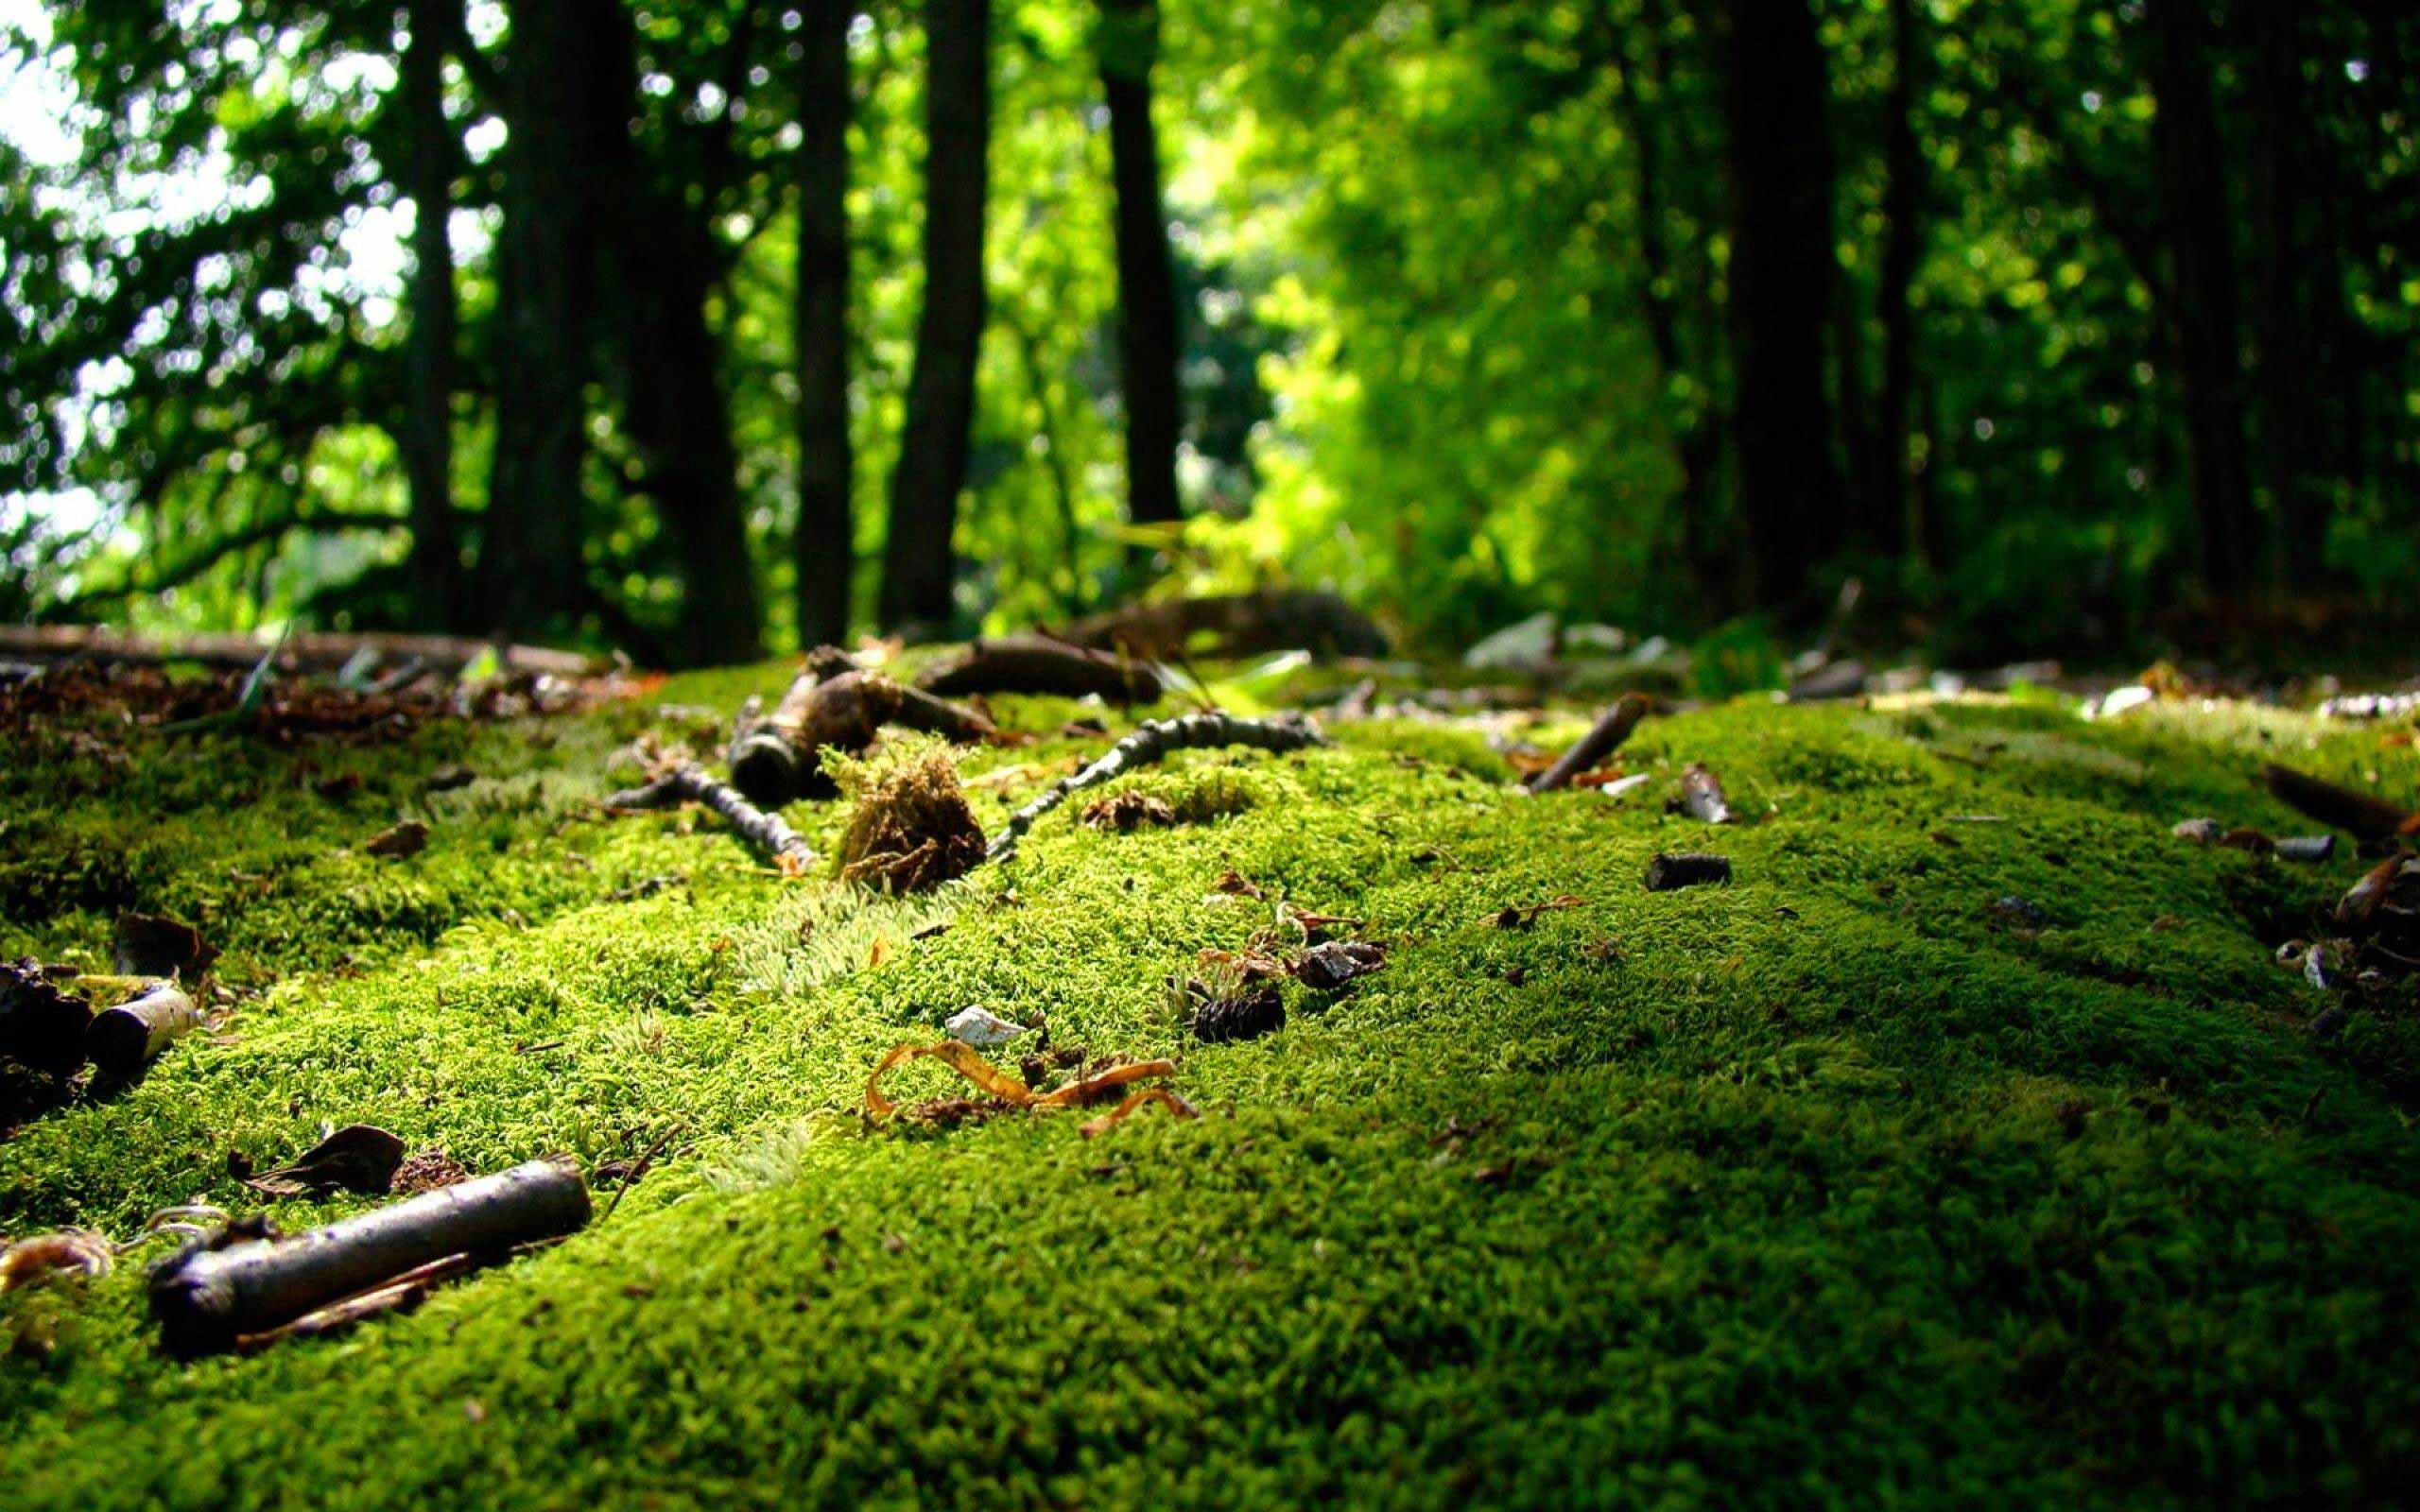 Green moss on forest ground